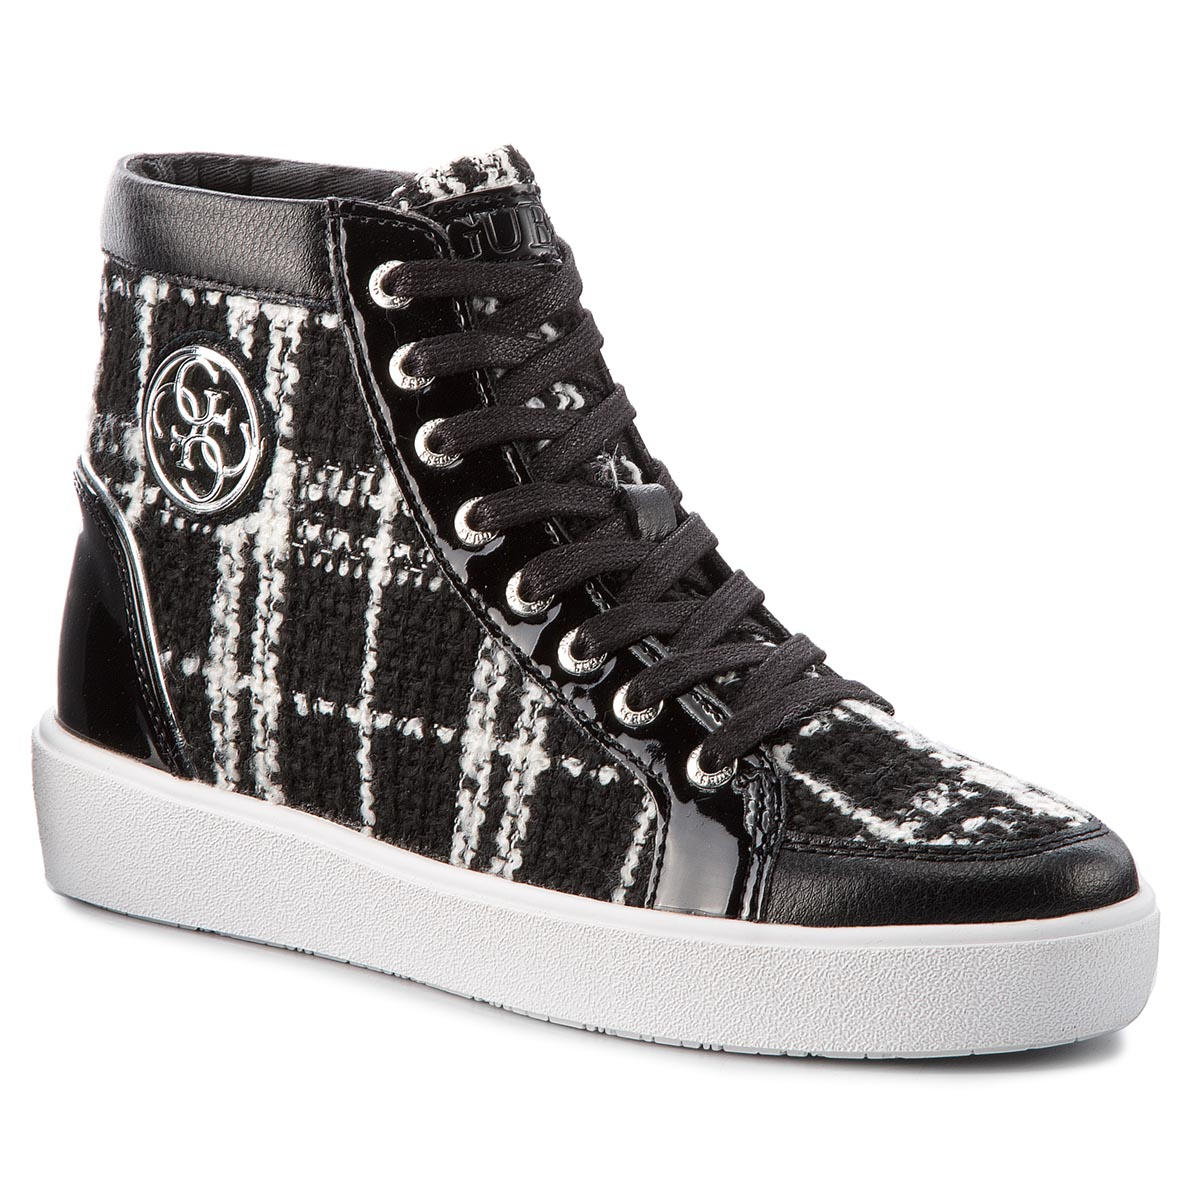 Sneakers GUESS - FLACE3 FAB12 WHITBL